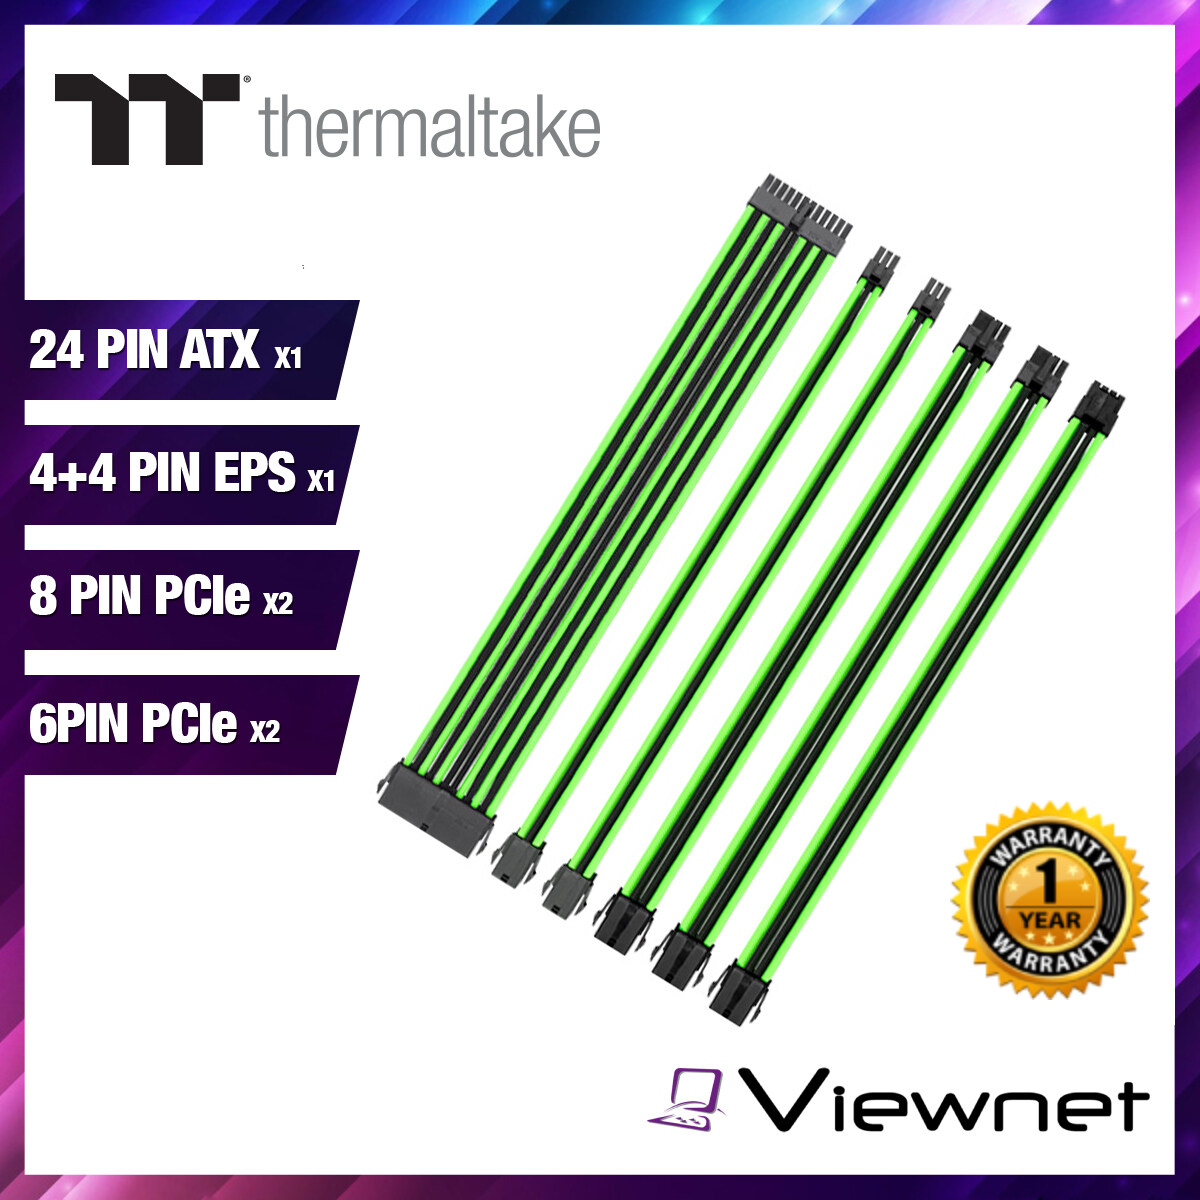 THERMALTAKE TTMOD POWER SUPPLY EXTENSION SLEEVE CABLE SET 300MM BLACK/GREEN (AC-034CN1NANA1)